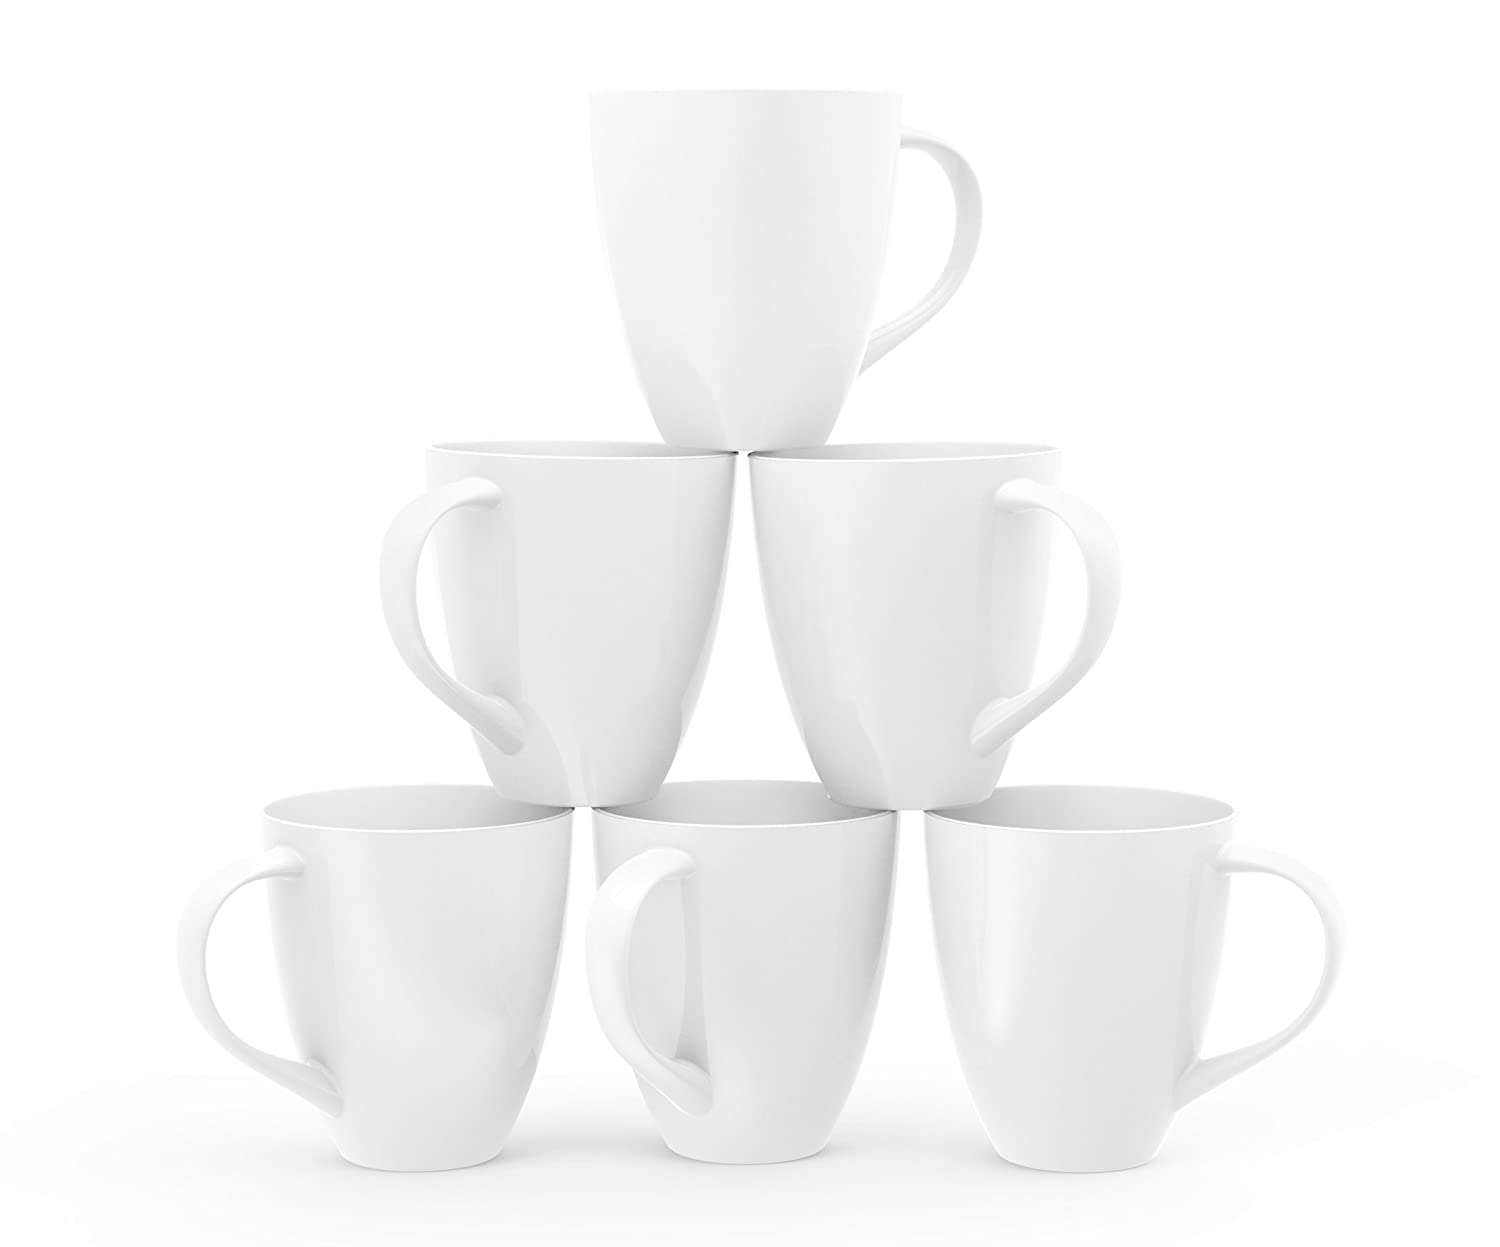 Francois et Mimi Large Ceramic Coffee Mugs, 16oz, White, Set of 6